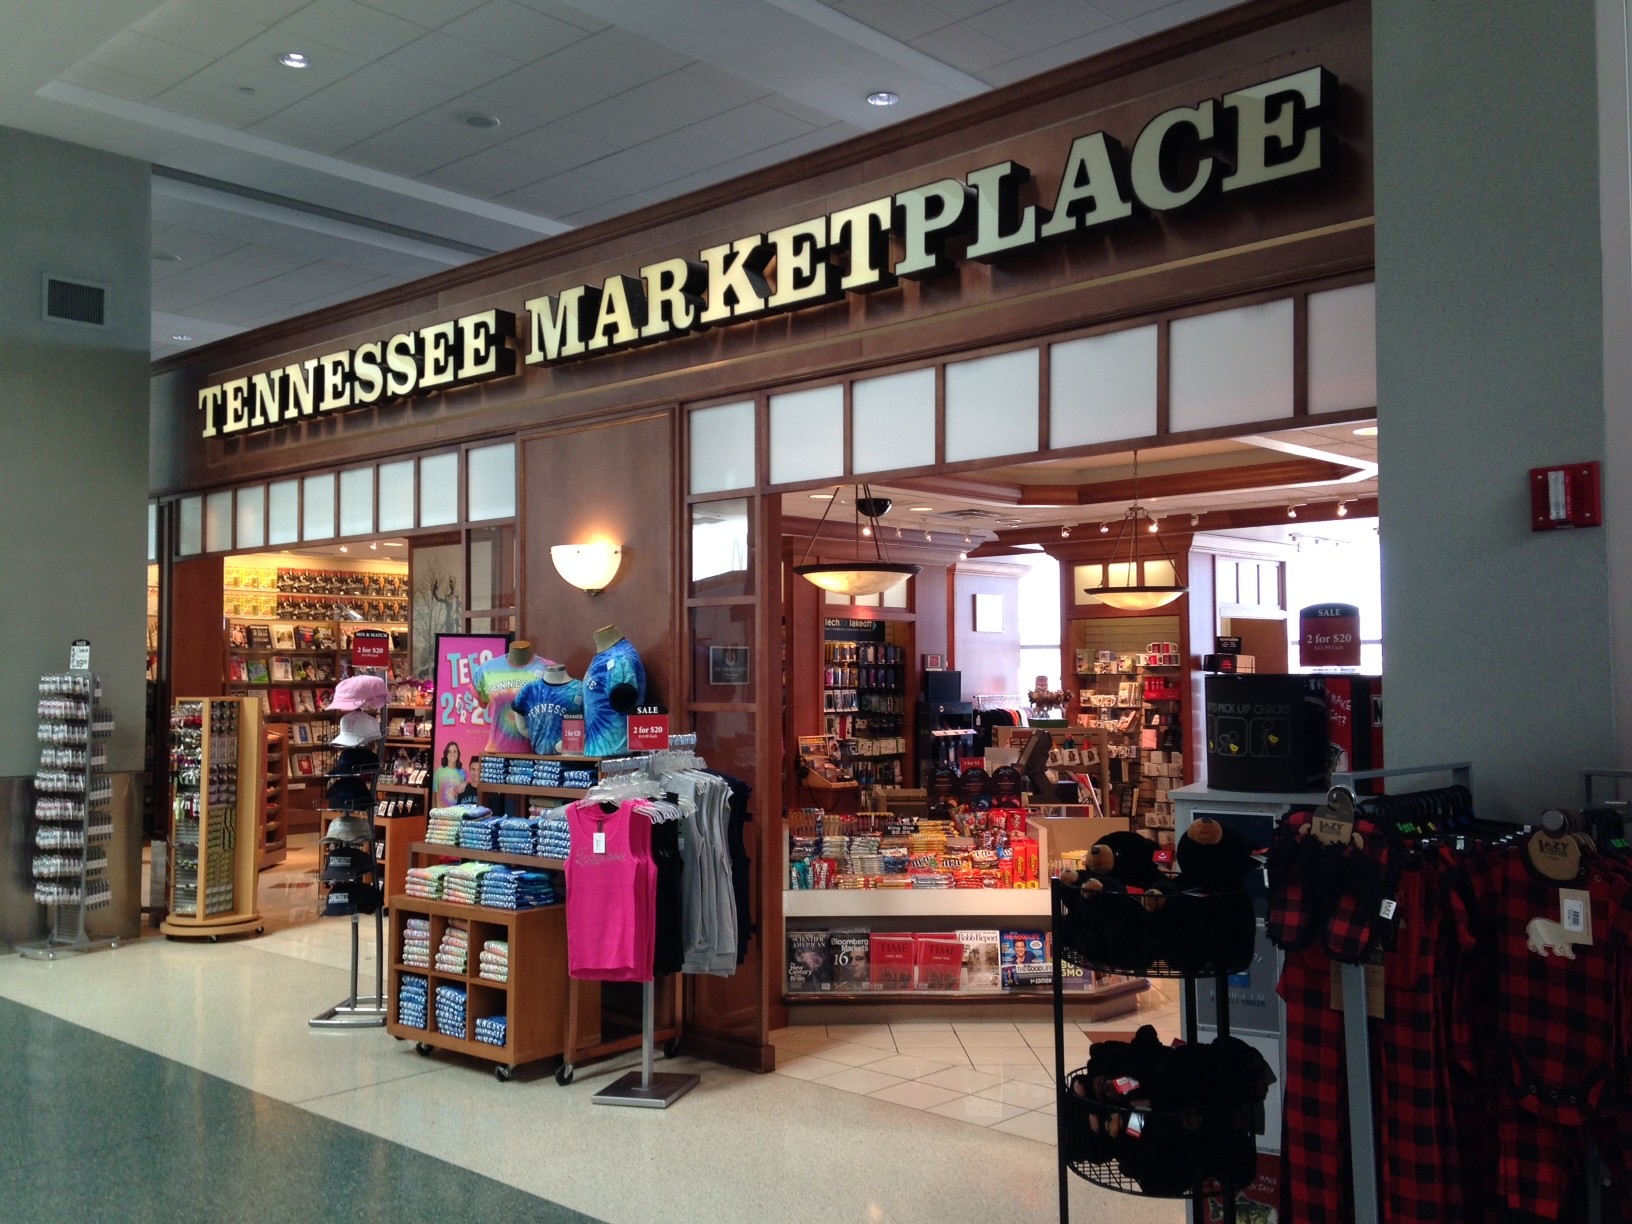 And a little poking around at the Tennessee store inside the airport.